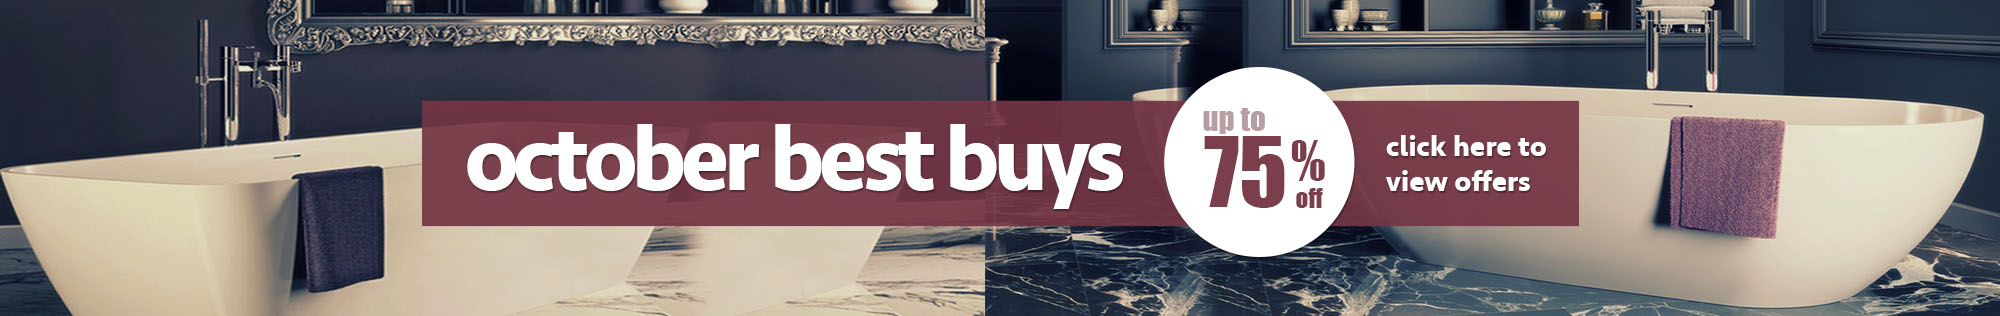 October Best Buys - Up to 75% off on selected items - view offers